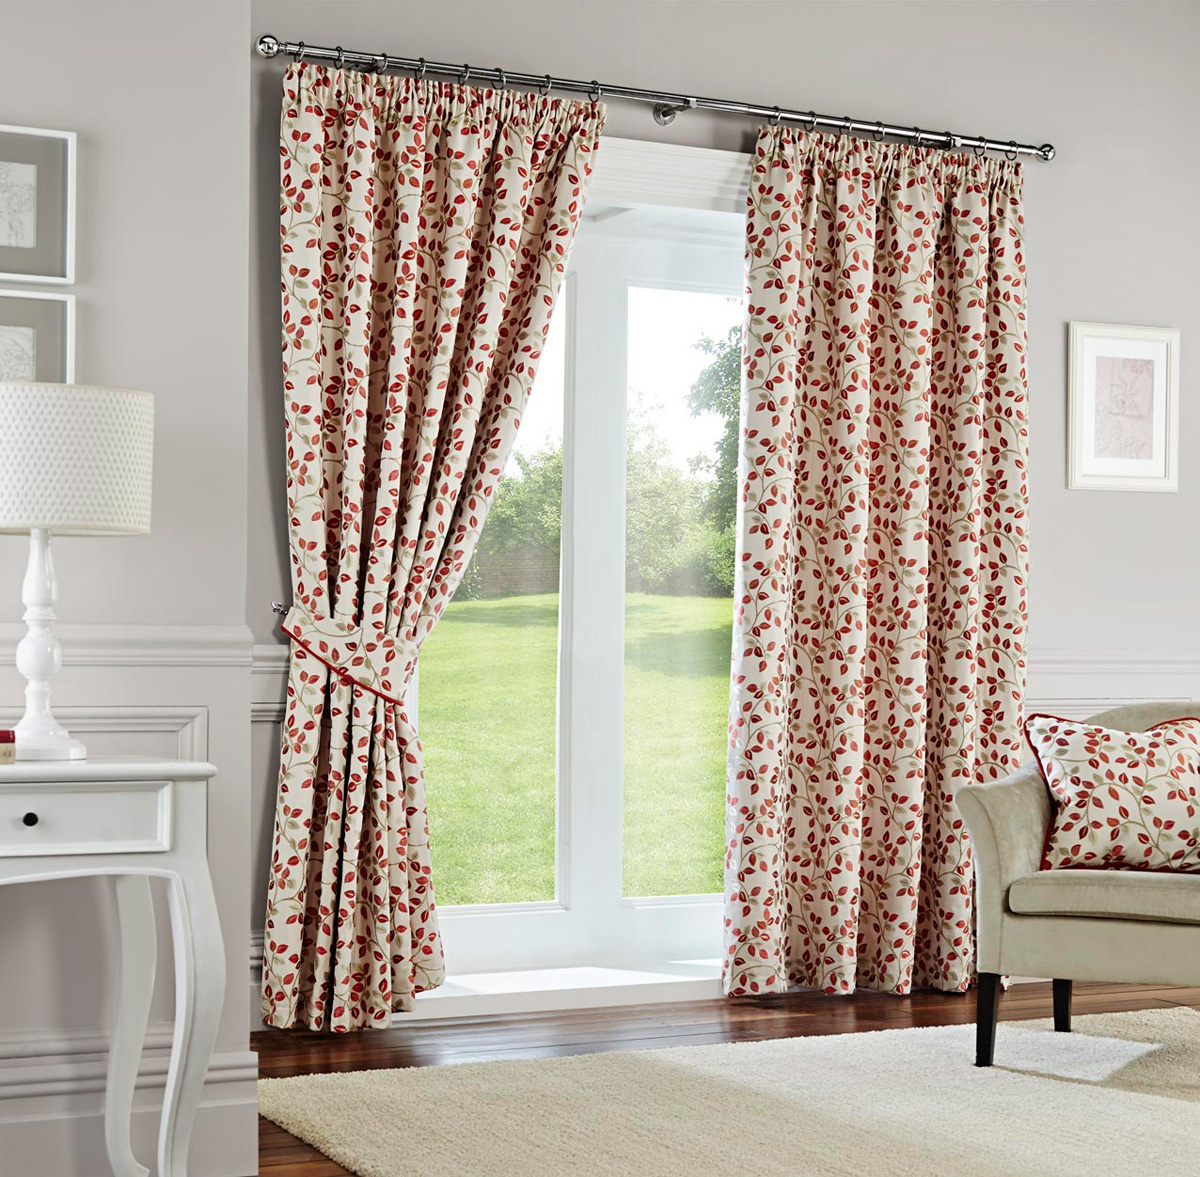 Terracotta Oakhurst Ready Made Lined Curtains